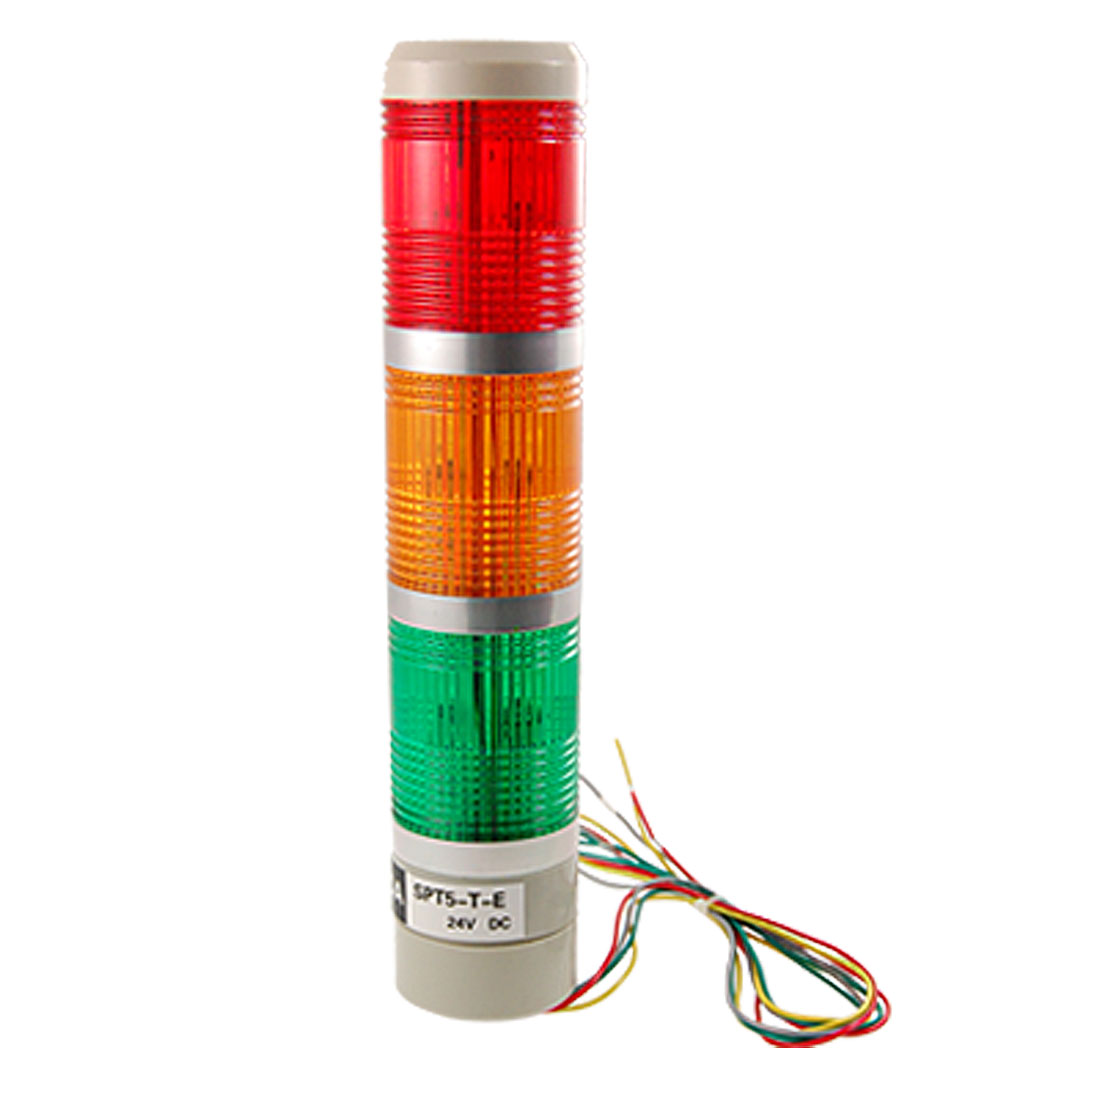 DC 24V Industrial Tower Signal Saftey Red Green Yellow Alarm Light